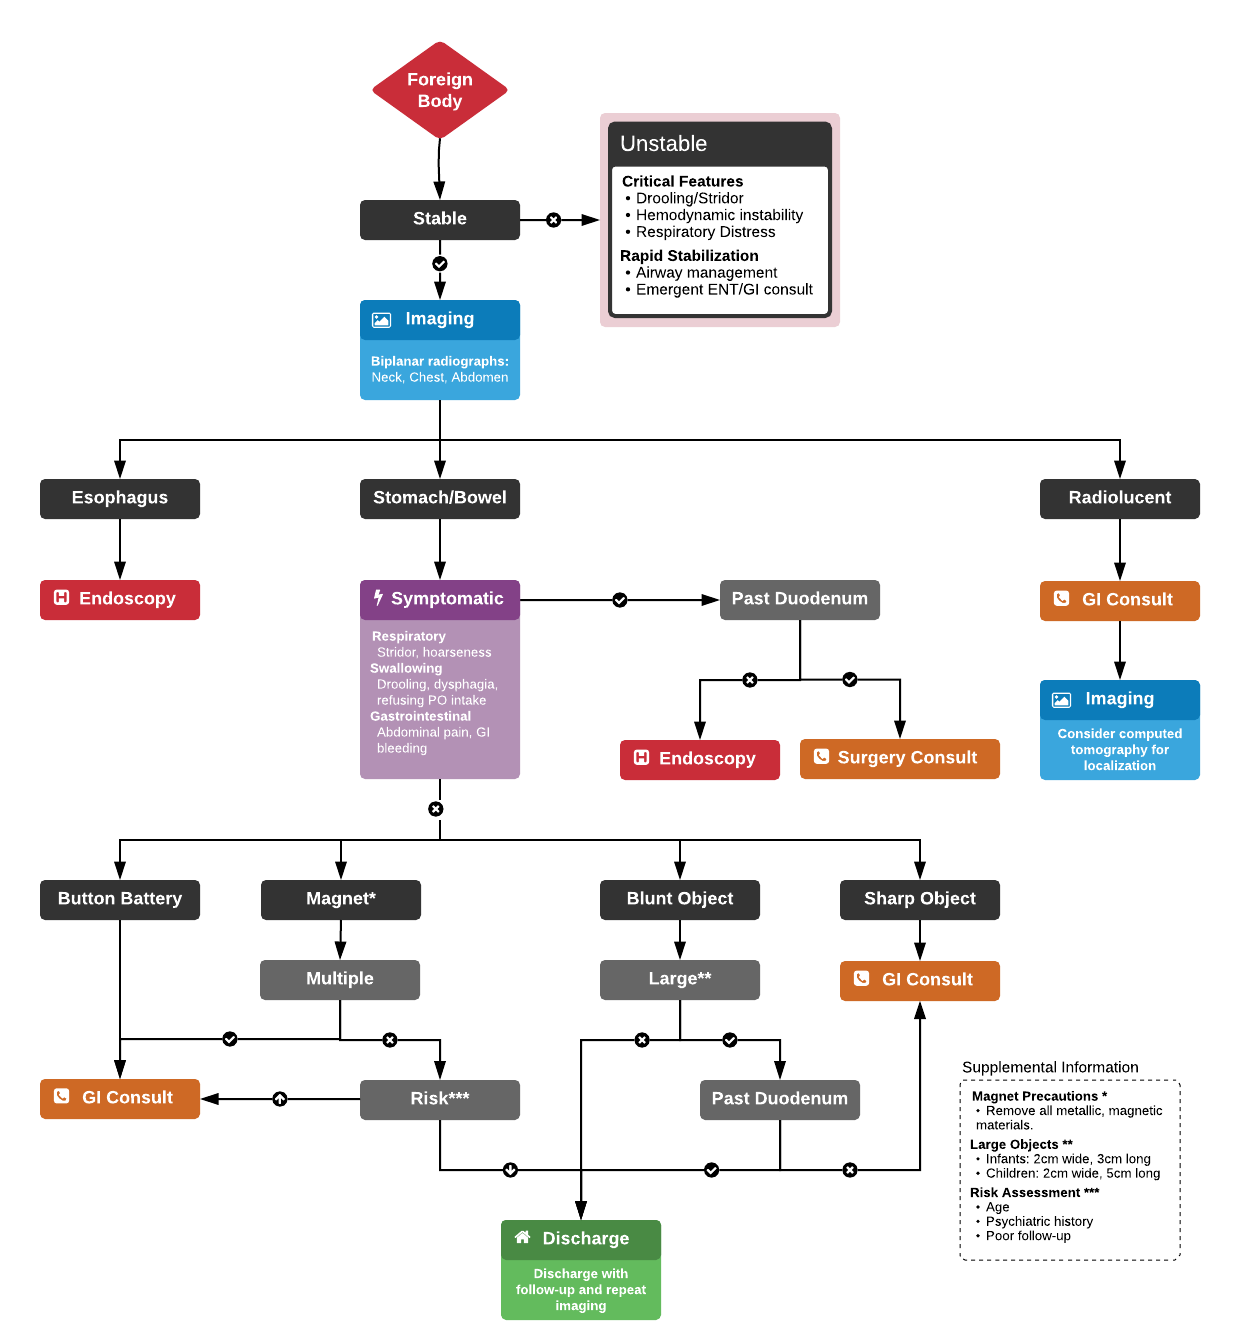 Algorithm for the Management of Pediatric Foreign Body Ingestion